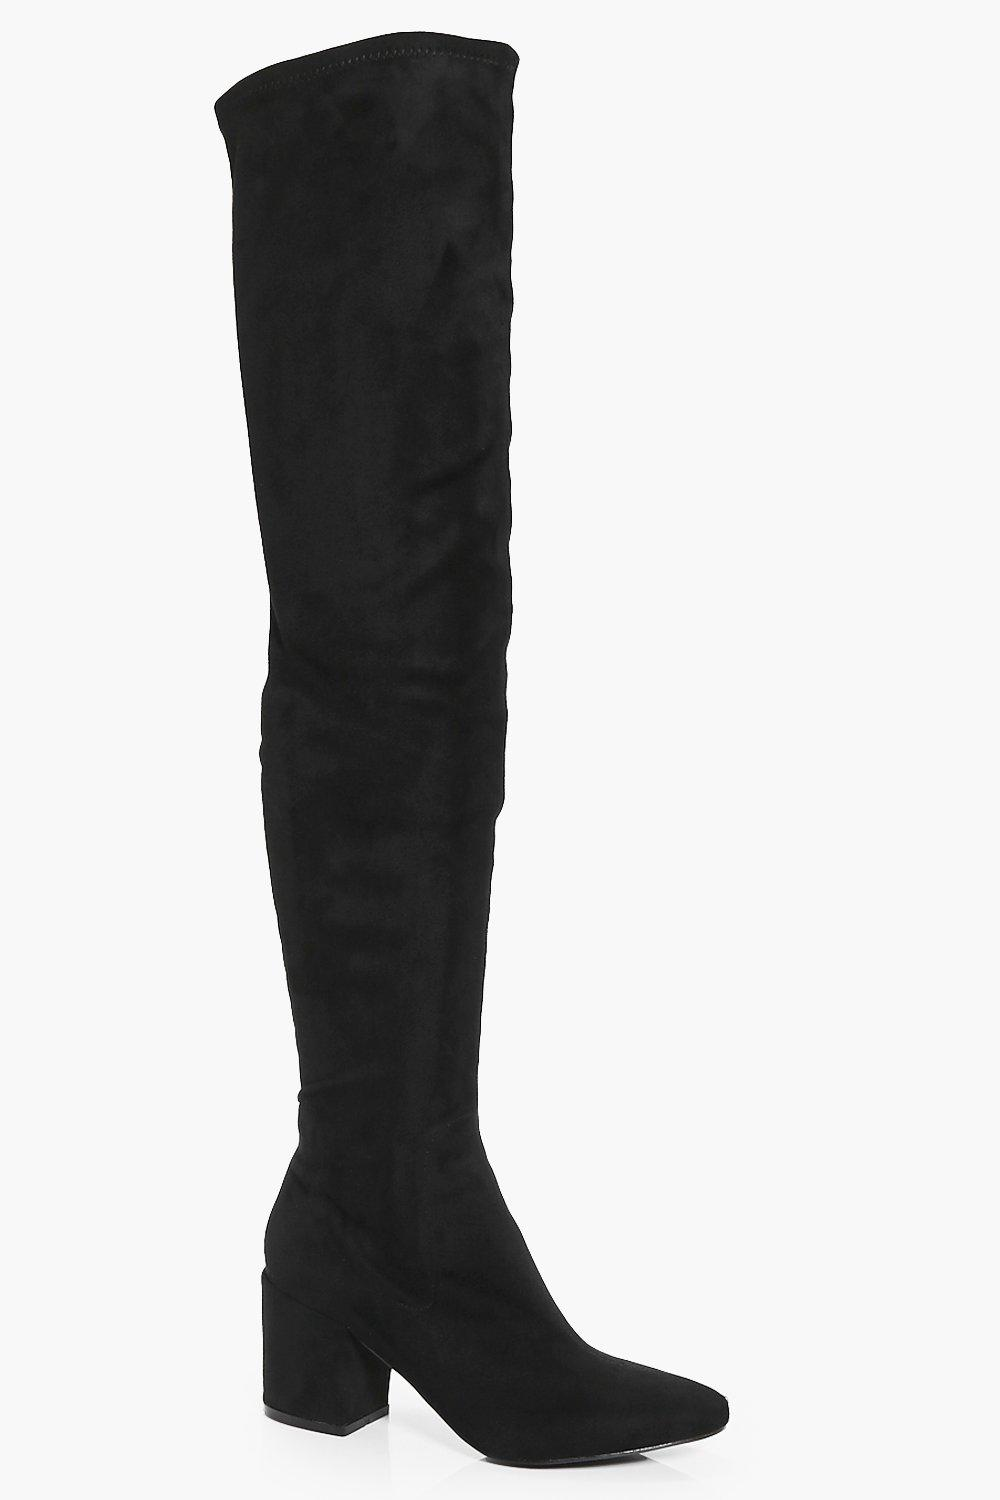 a9272f8dee Womens Black Block Heel Thigh High Boots. Hover to zoom